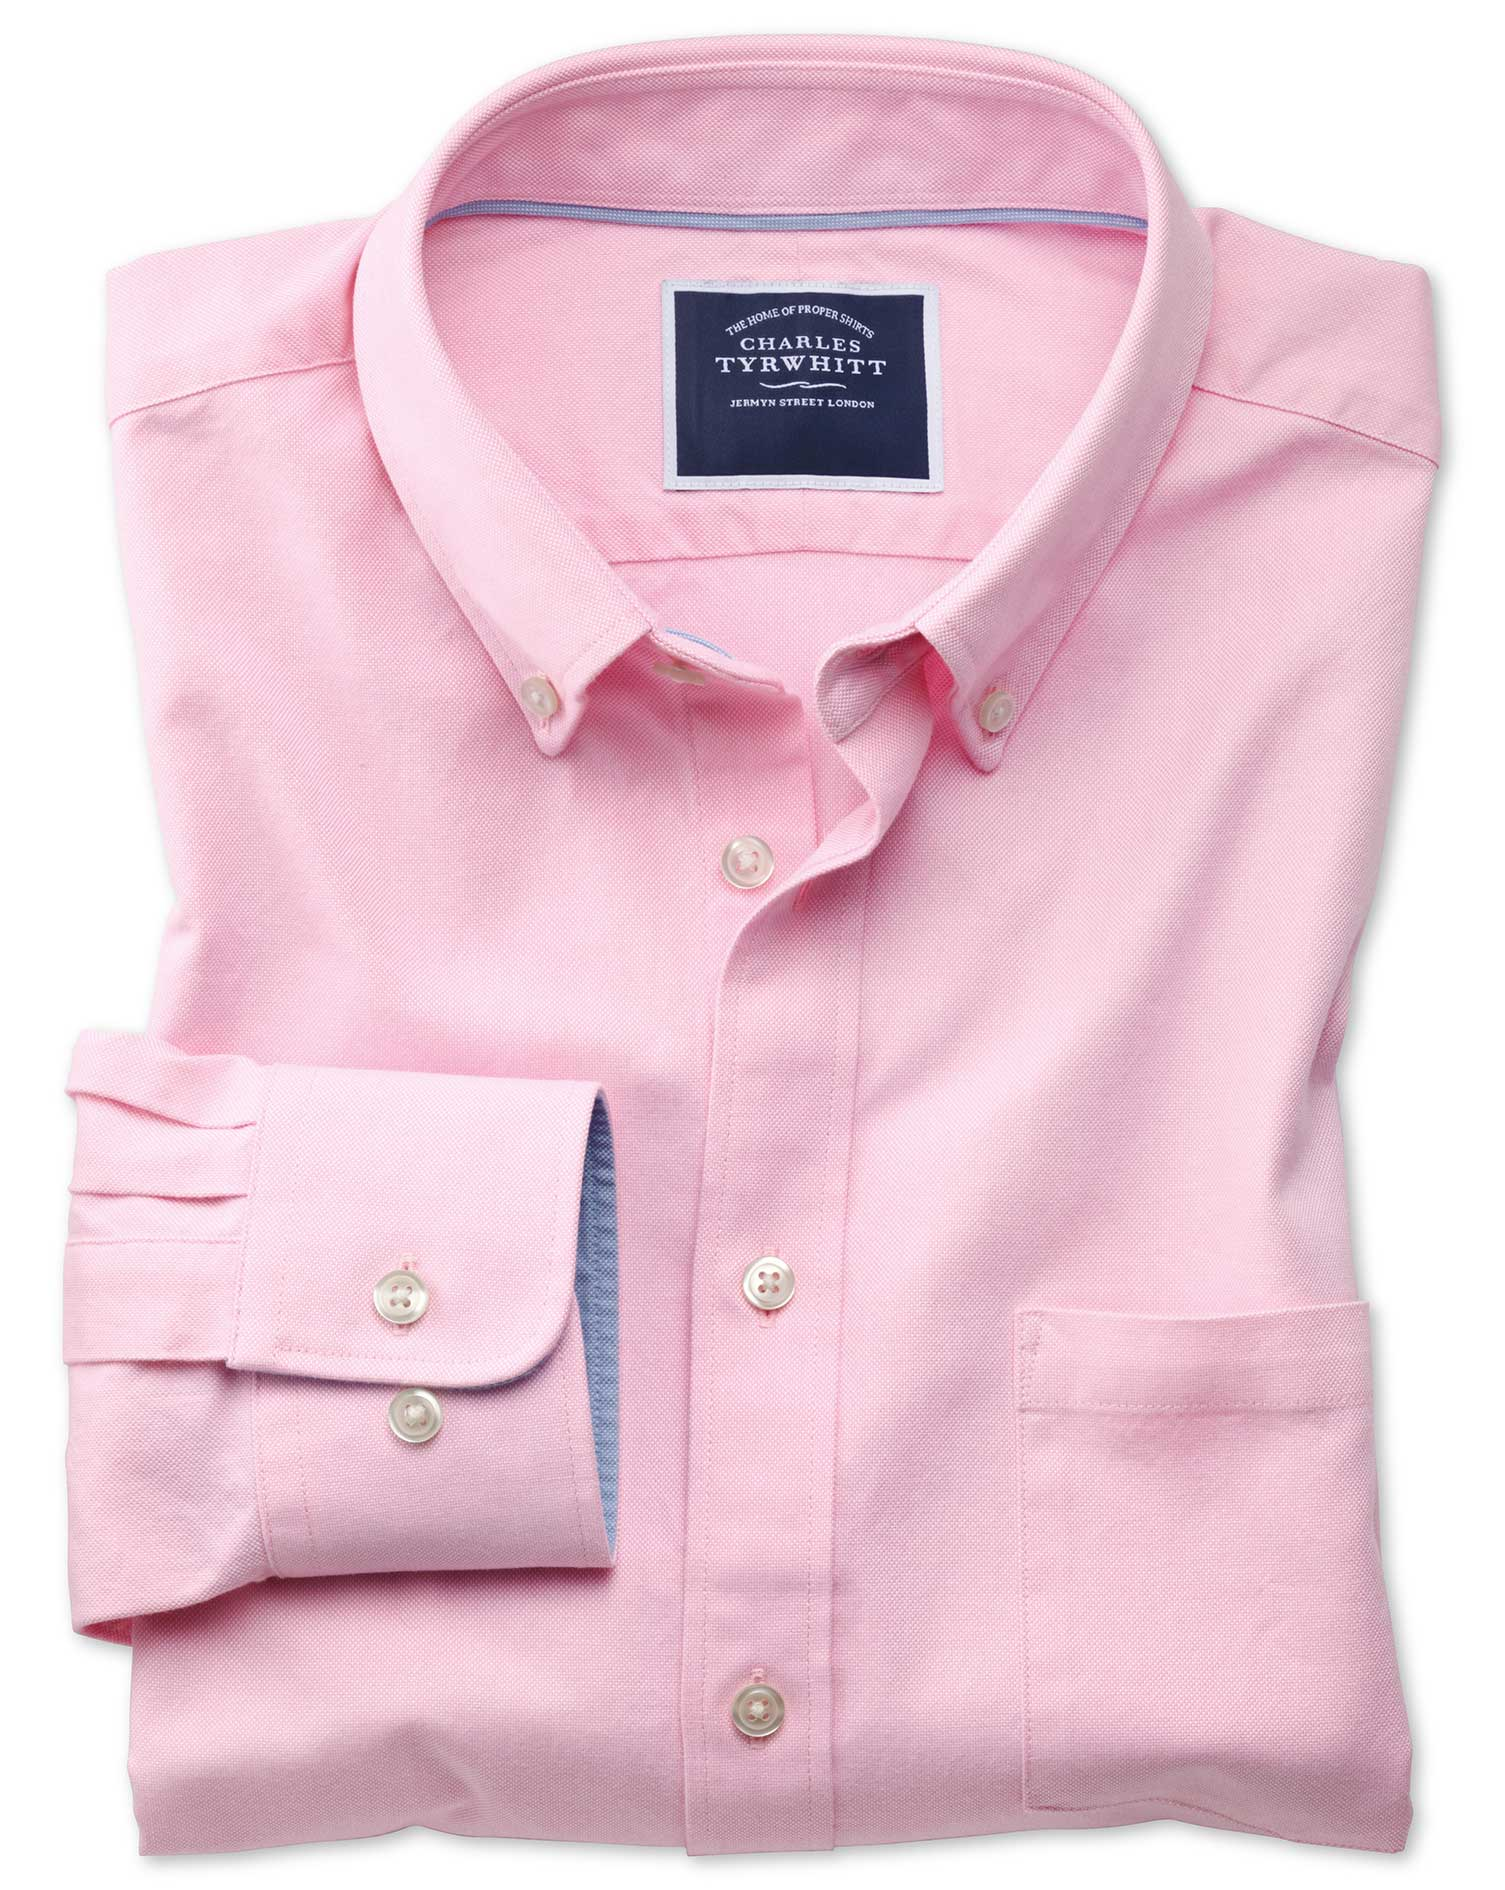 Classic Fit Button-Down Washed Oxford Plain Light Pink Cotton Shirt Single Cuff Size XXXL by Charles